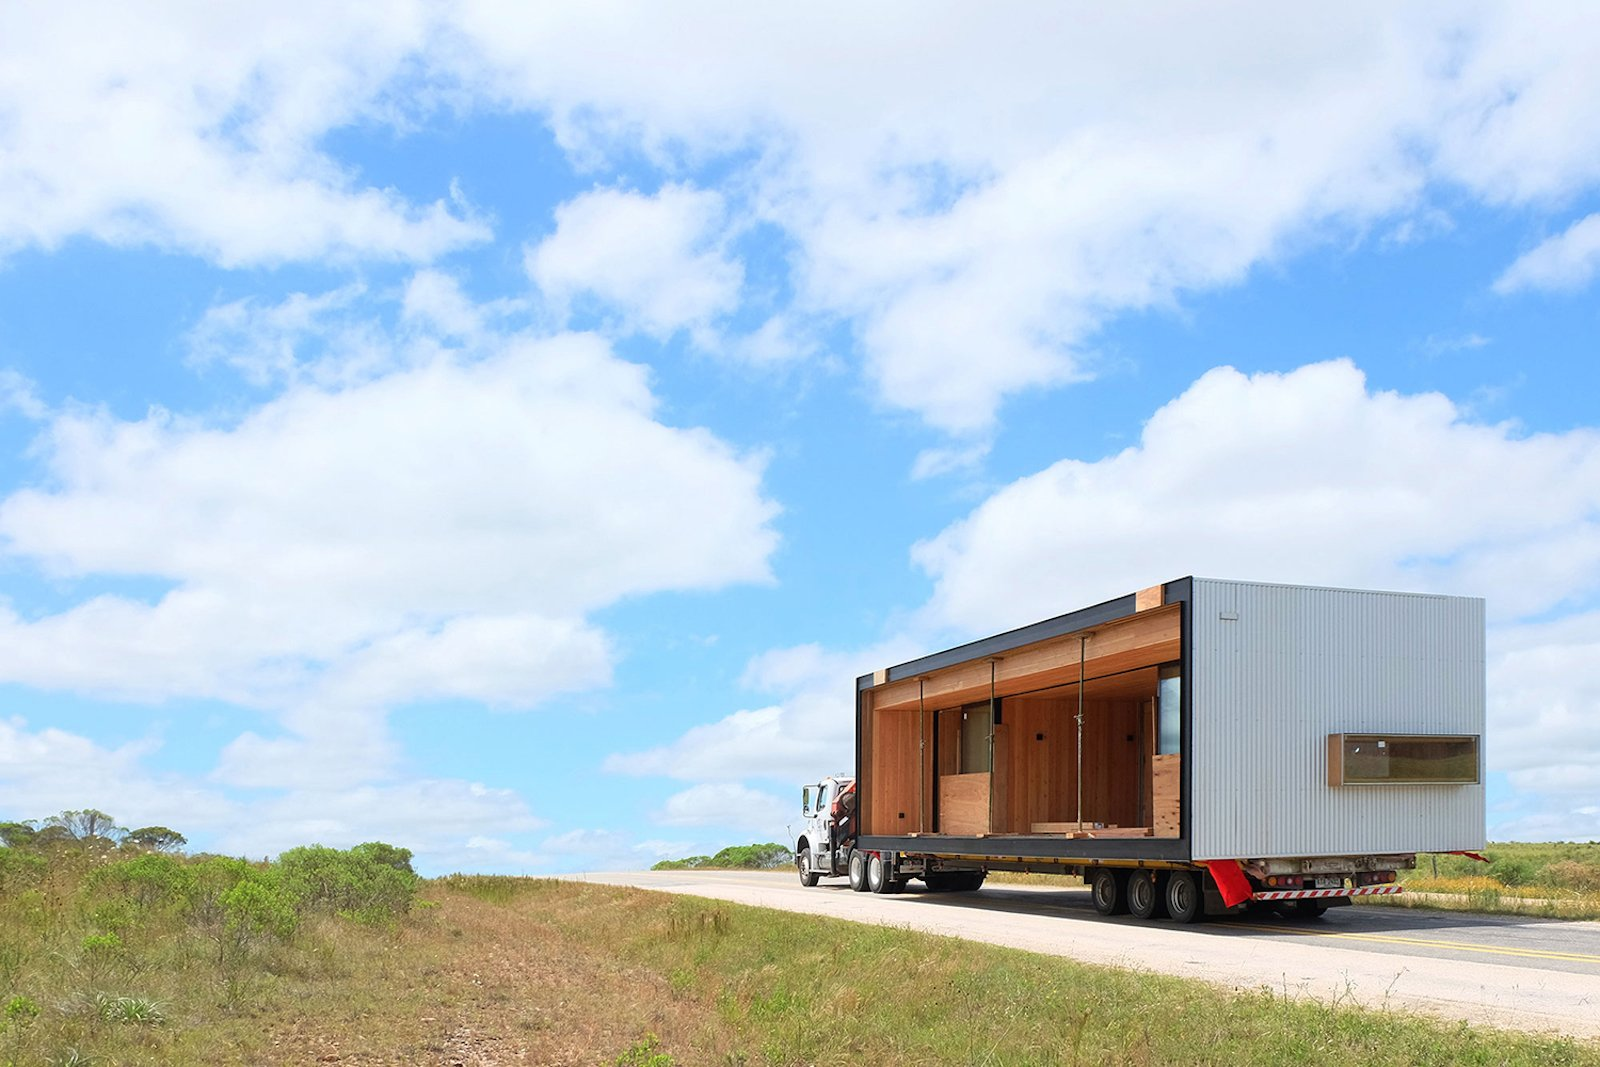 Exterior and Prefab Building Type  Photo 10 of 16 in A Remote Prefab in Uruguay Is Completely Self-Sufficient